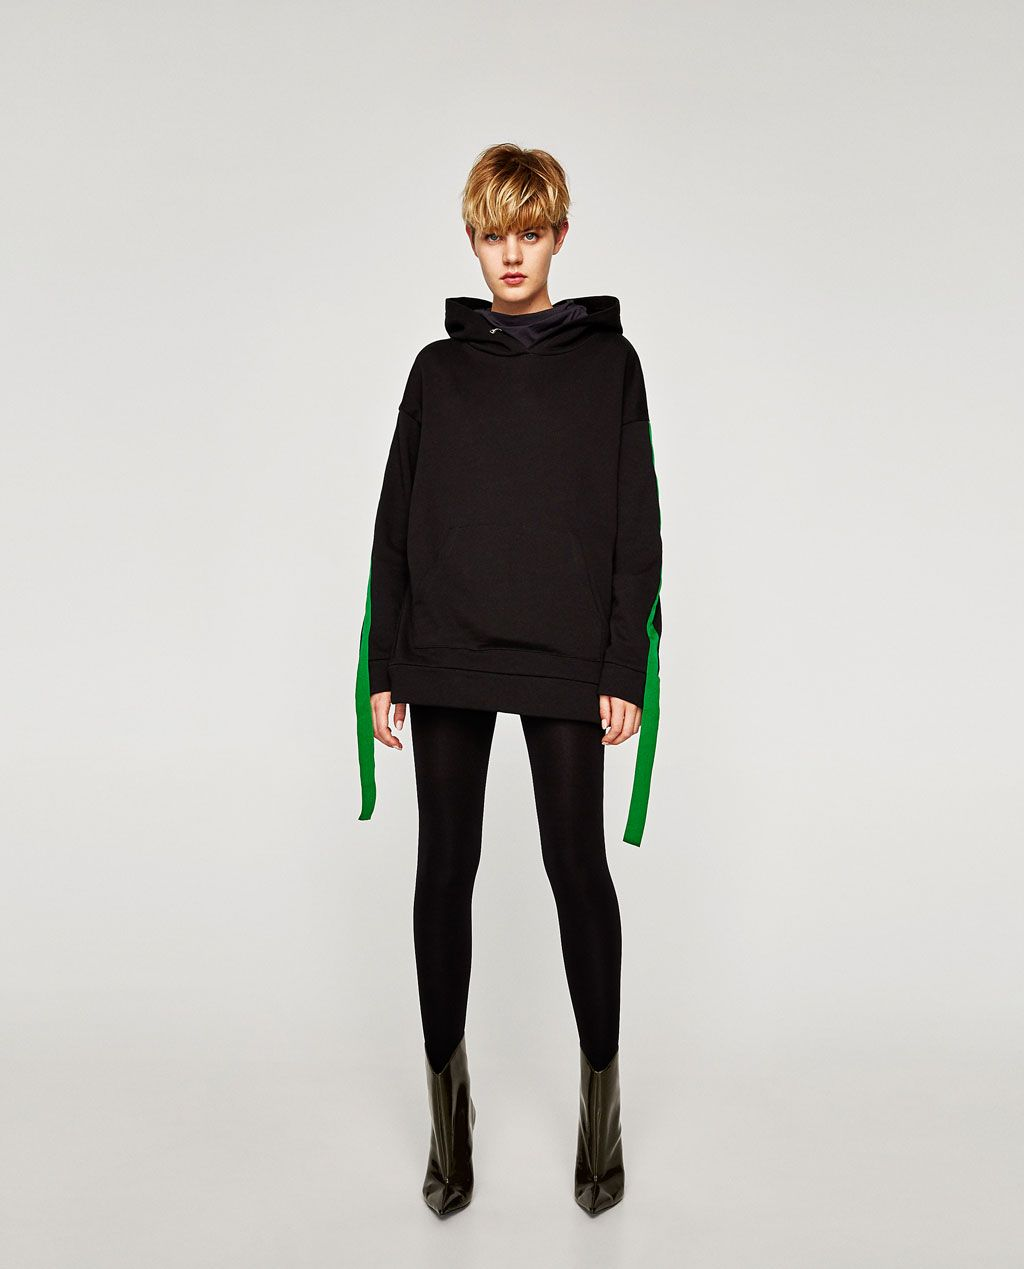 a88df88f756 Image 1 of CONTRASTING SWEATSHIRT WITH RIBBONS from Zara